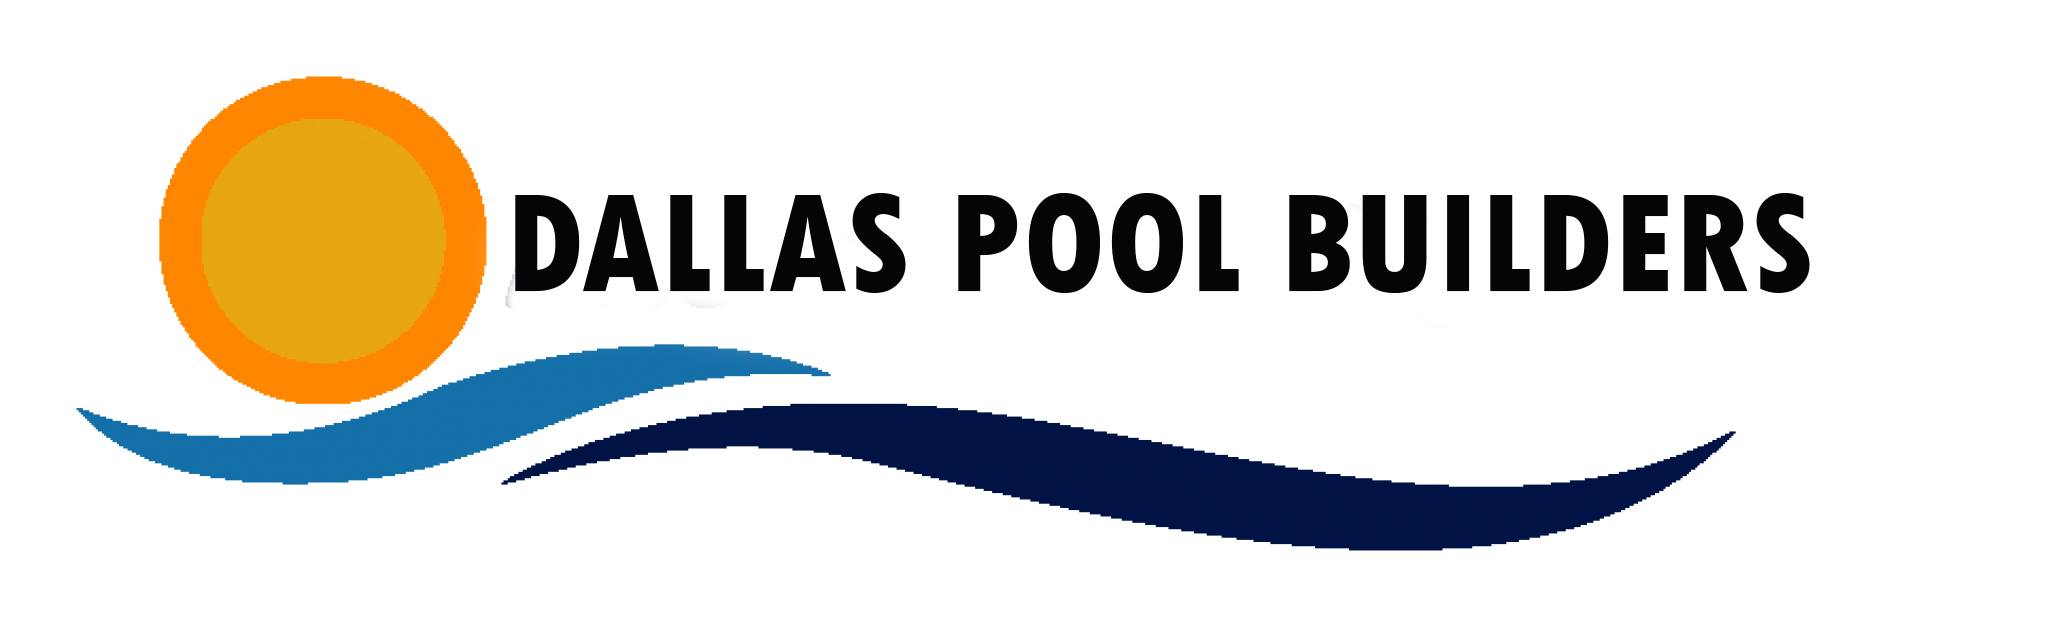 Pool Installation Dallas Is The Trusted Company For All Dallas Pool Installations